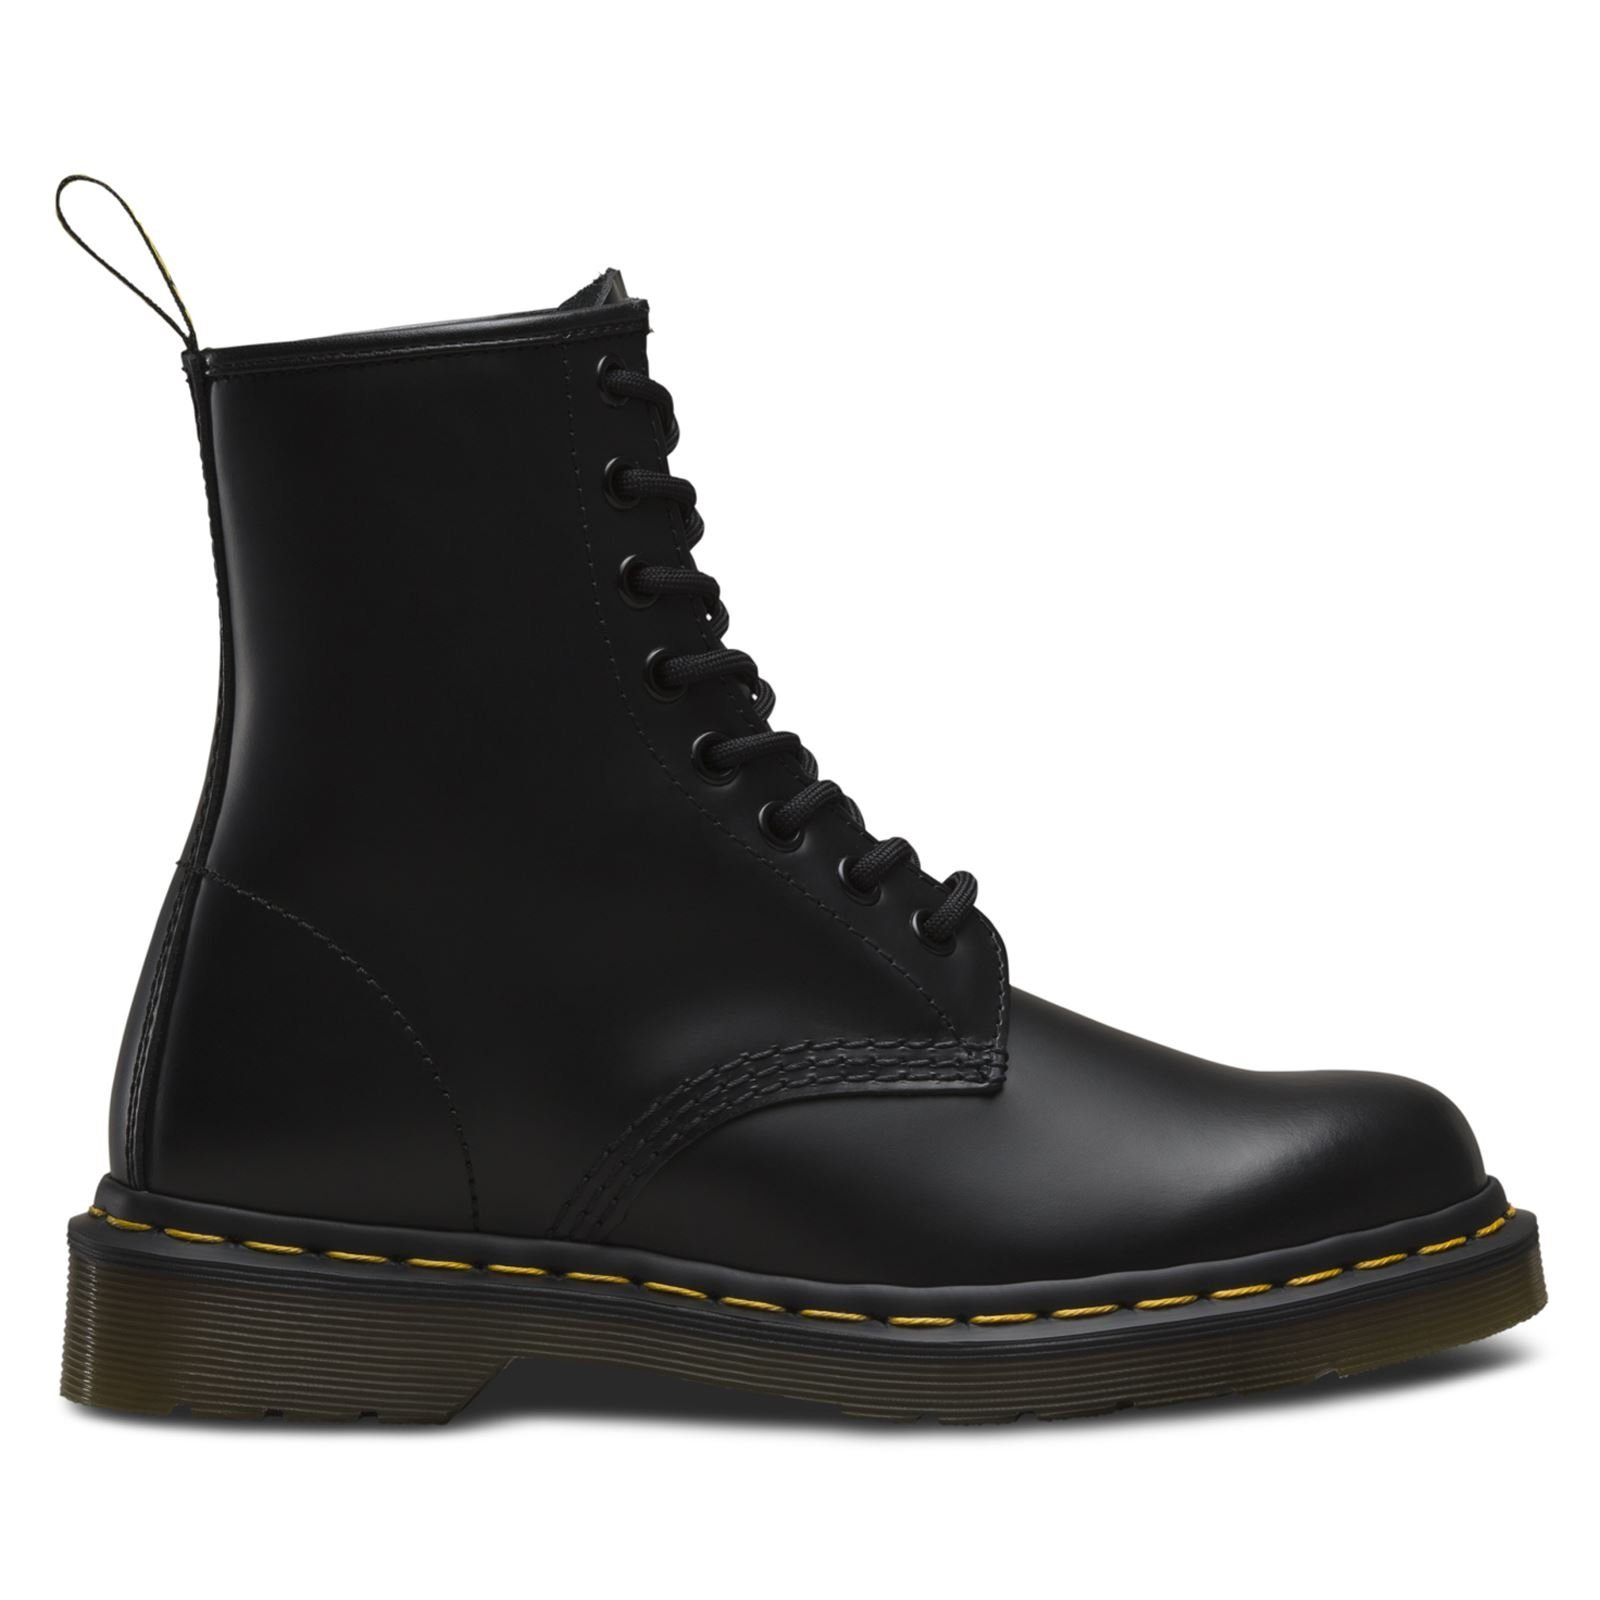 Dr. Martens 1460 Fashion Boot, Black Softy T, 9 by Dr. Martens